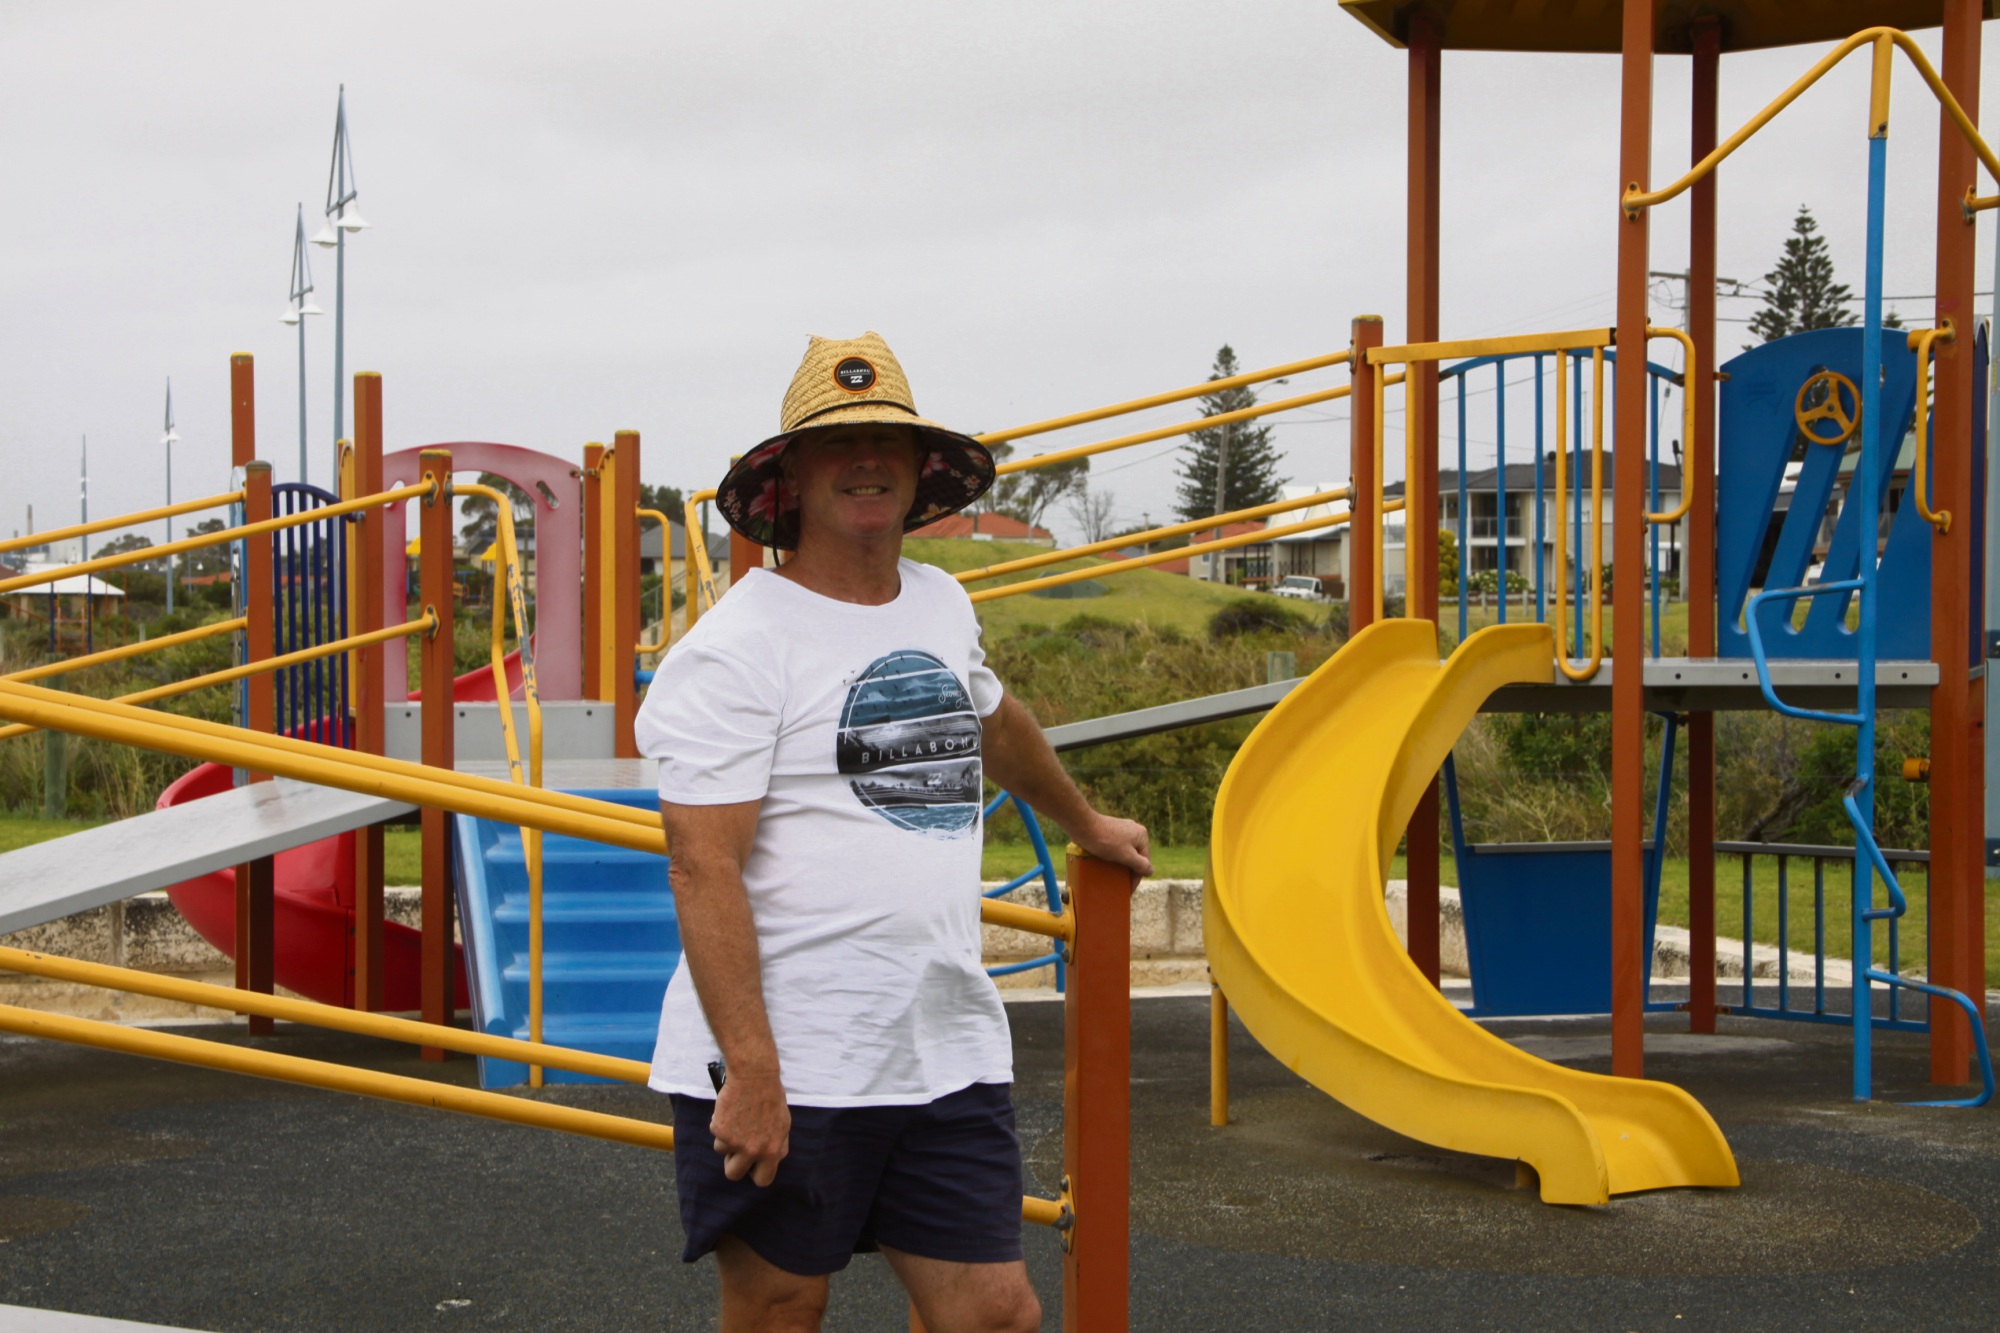 Resident Tim Kenny bemoans the lack of shade at play equipment in the City's playgrounds.